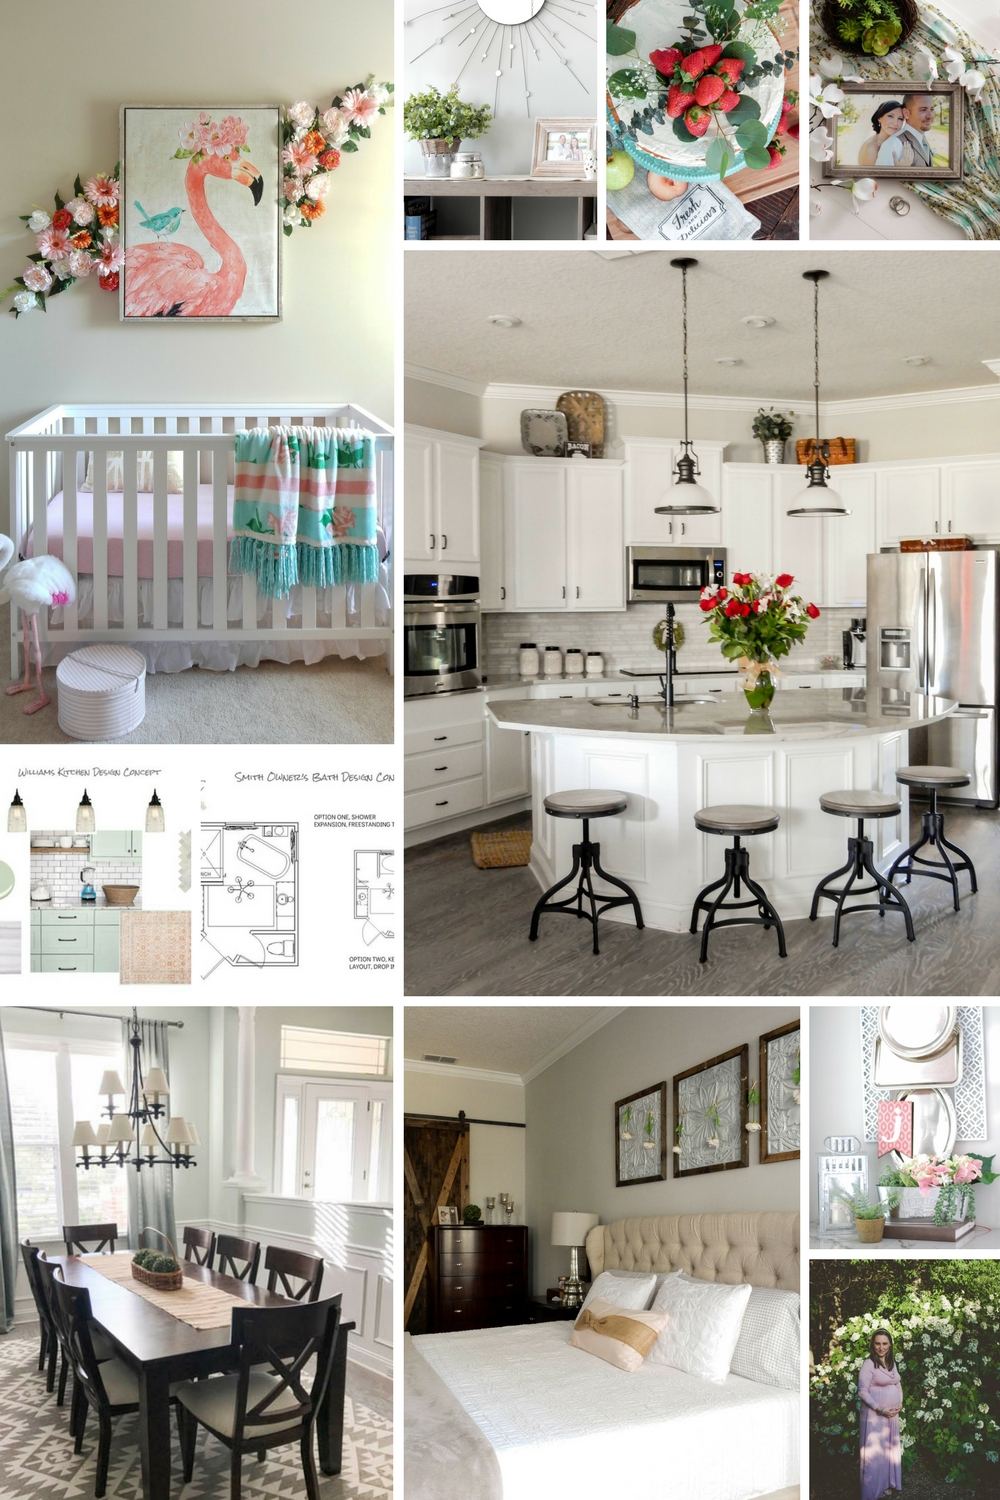 Jones Sweet Homes | Design + Blog